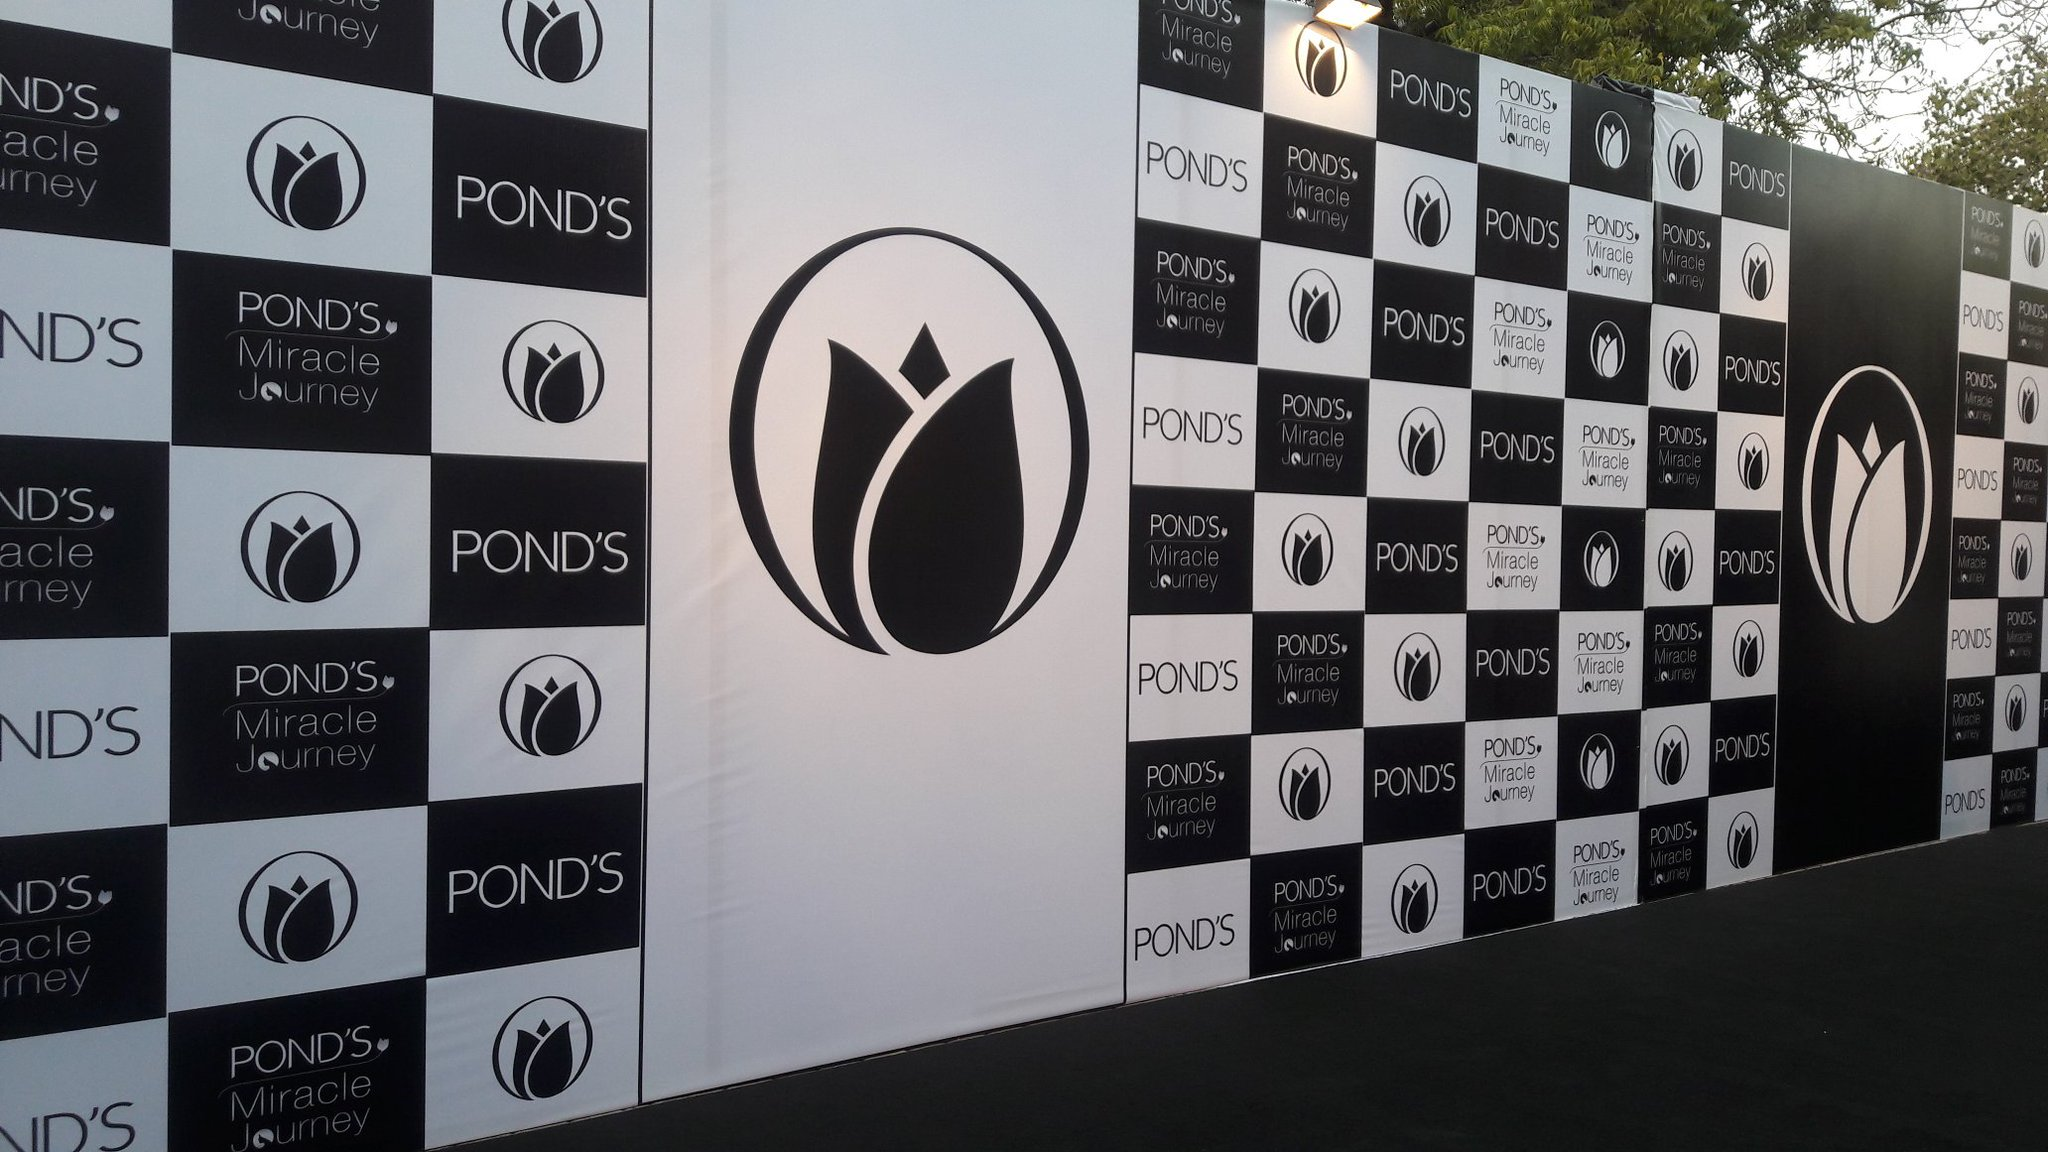 Ponds Miracle Gala 2016